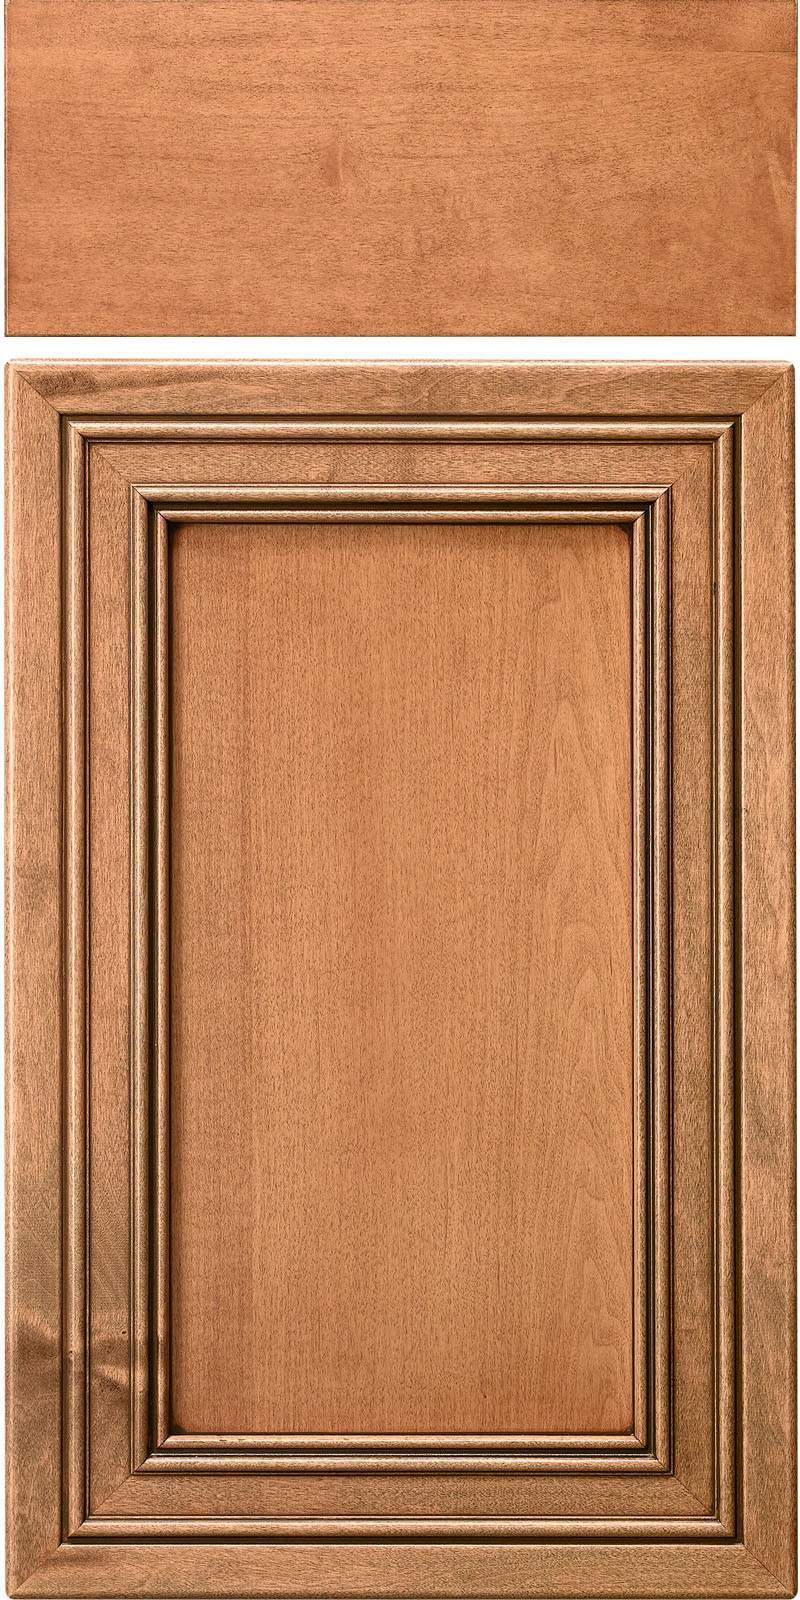 TW10318 | Plywood Panel | Materials | Cabinet Doors ...